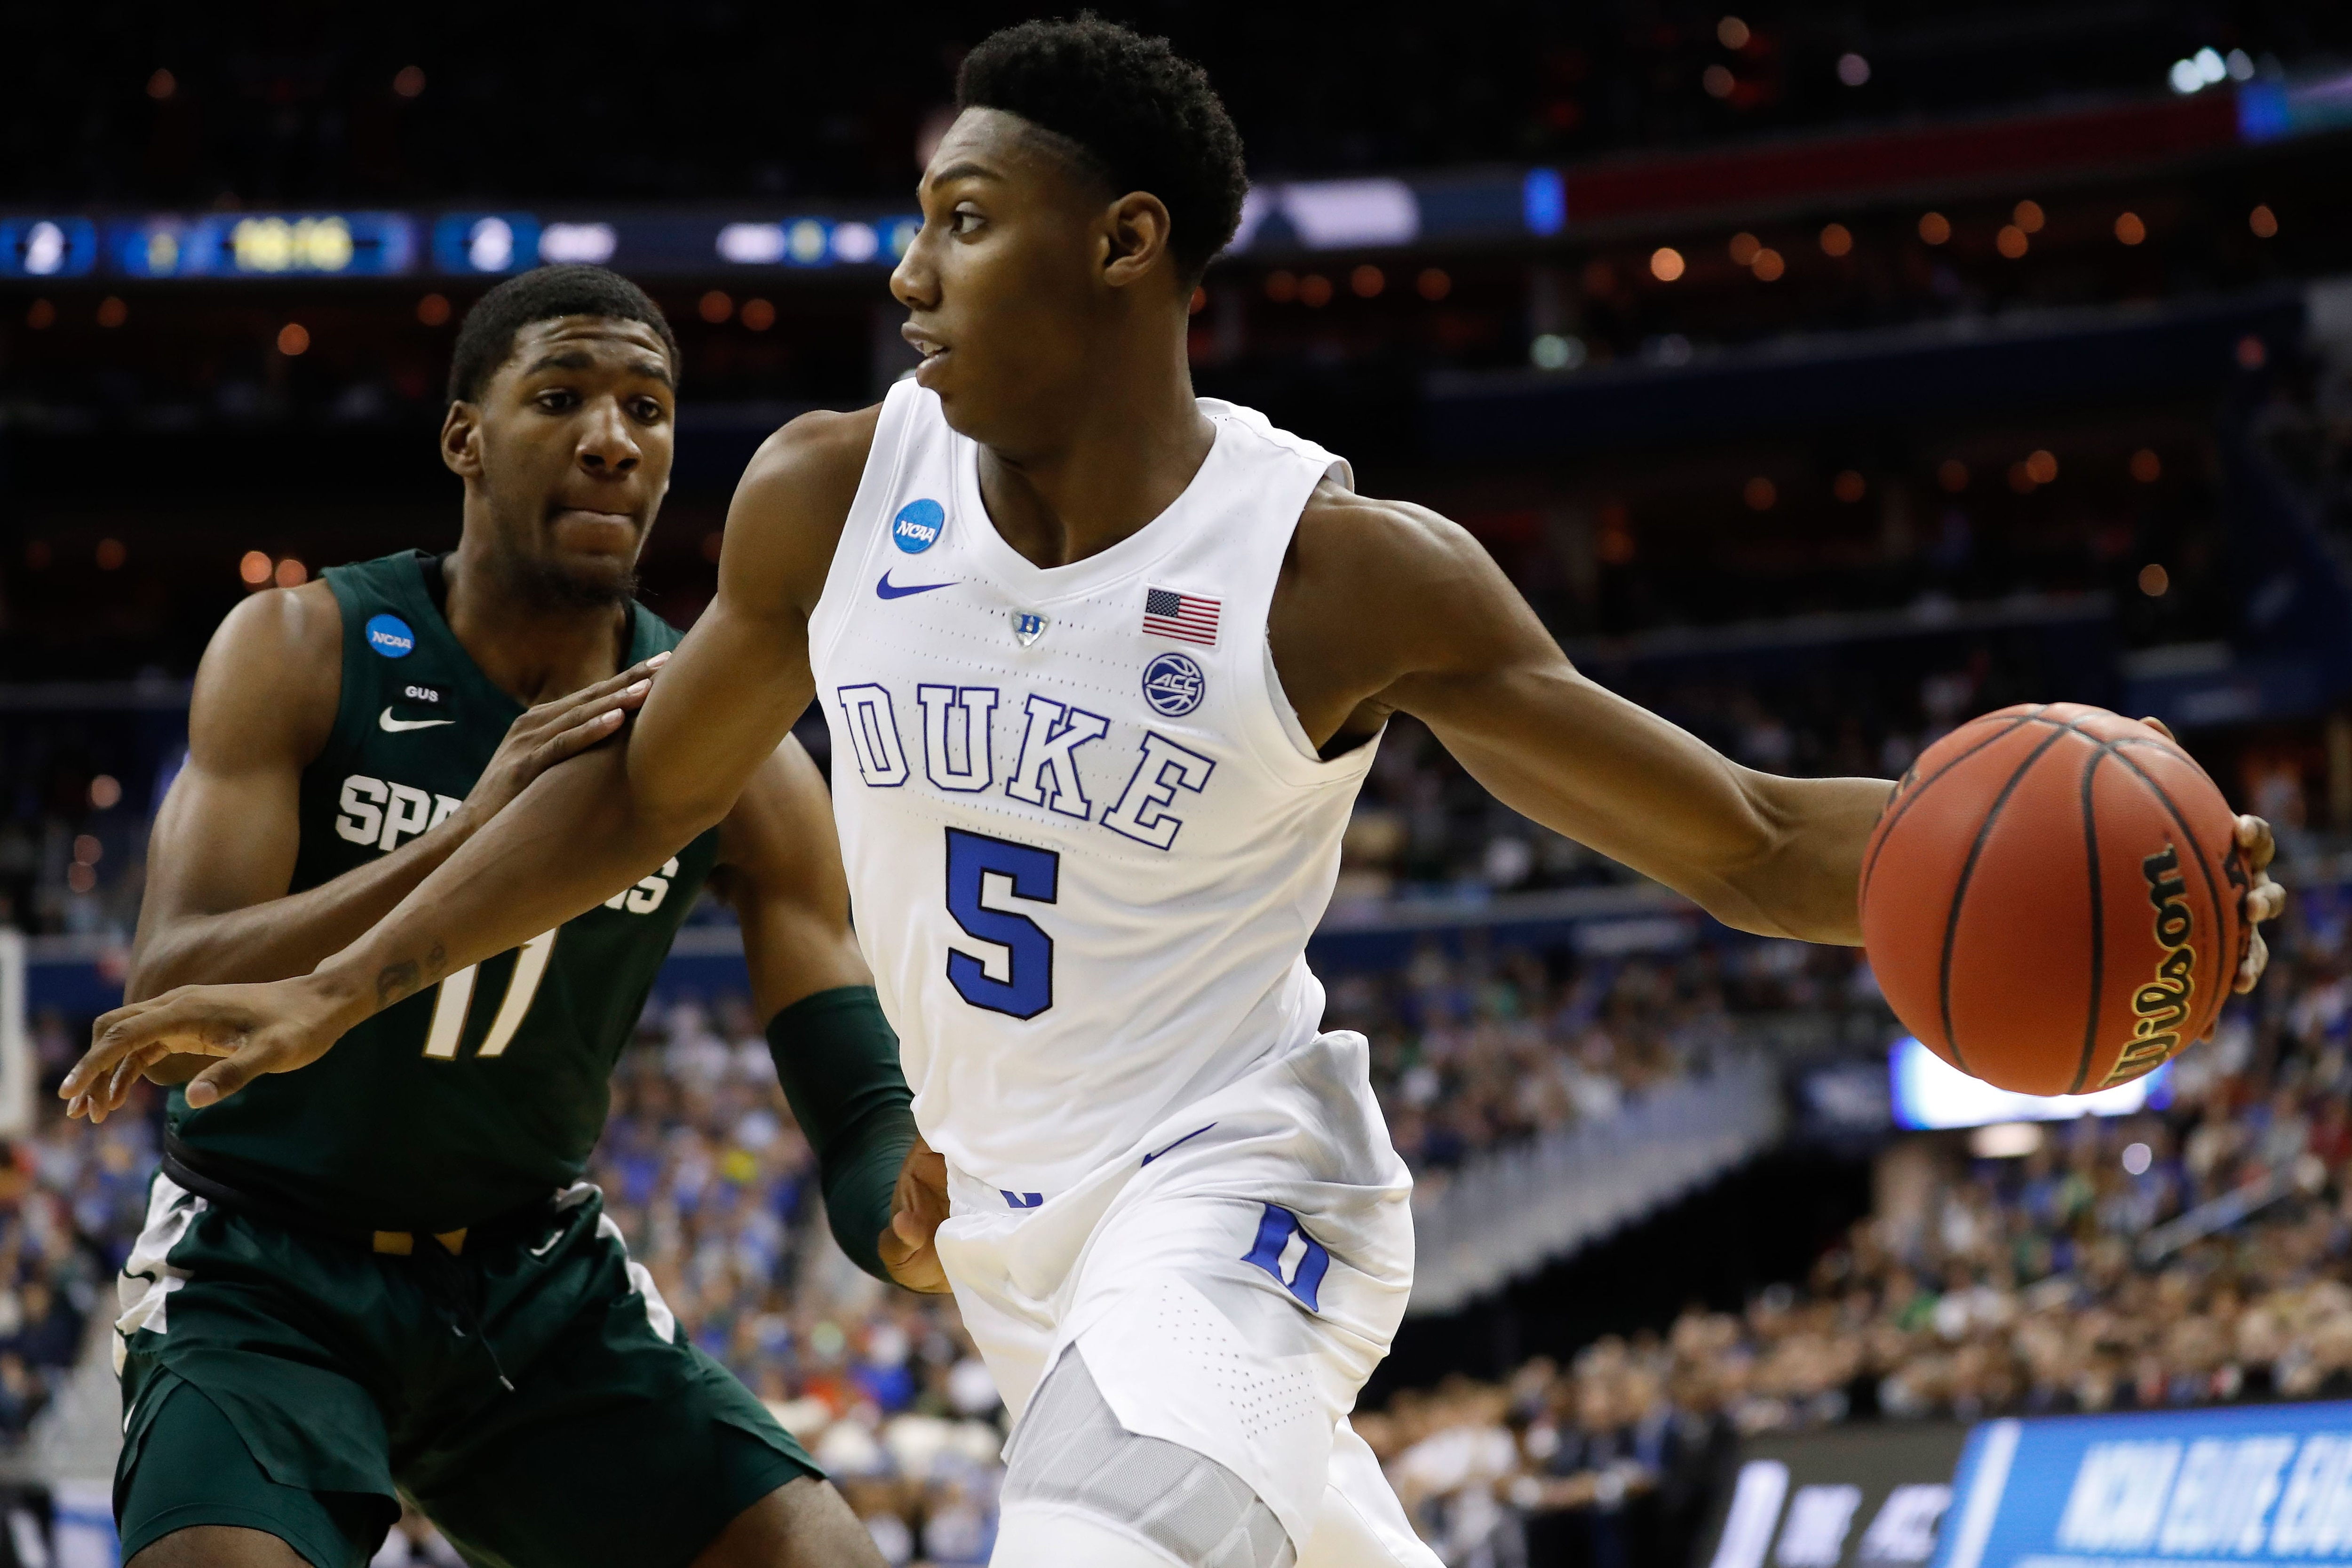 The New York Knicks are considering drafting RJ Barrett with the No. 3 overall pick in the 2019 NBA Draft.